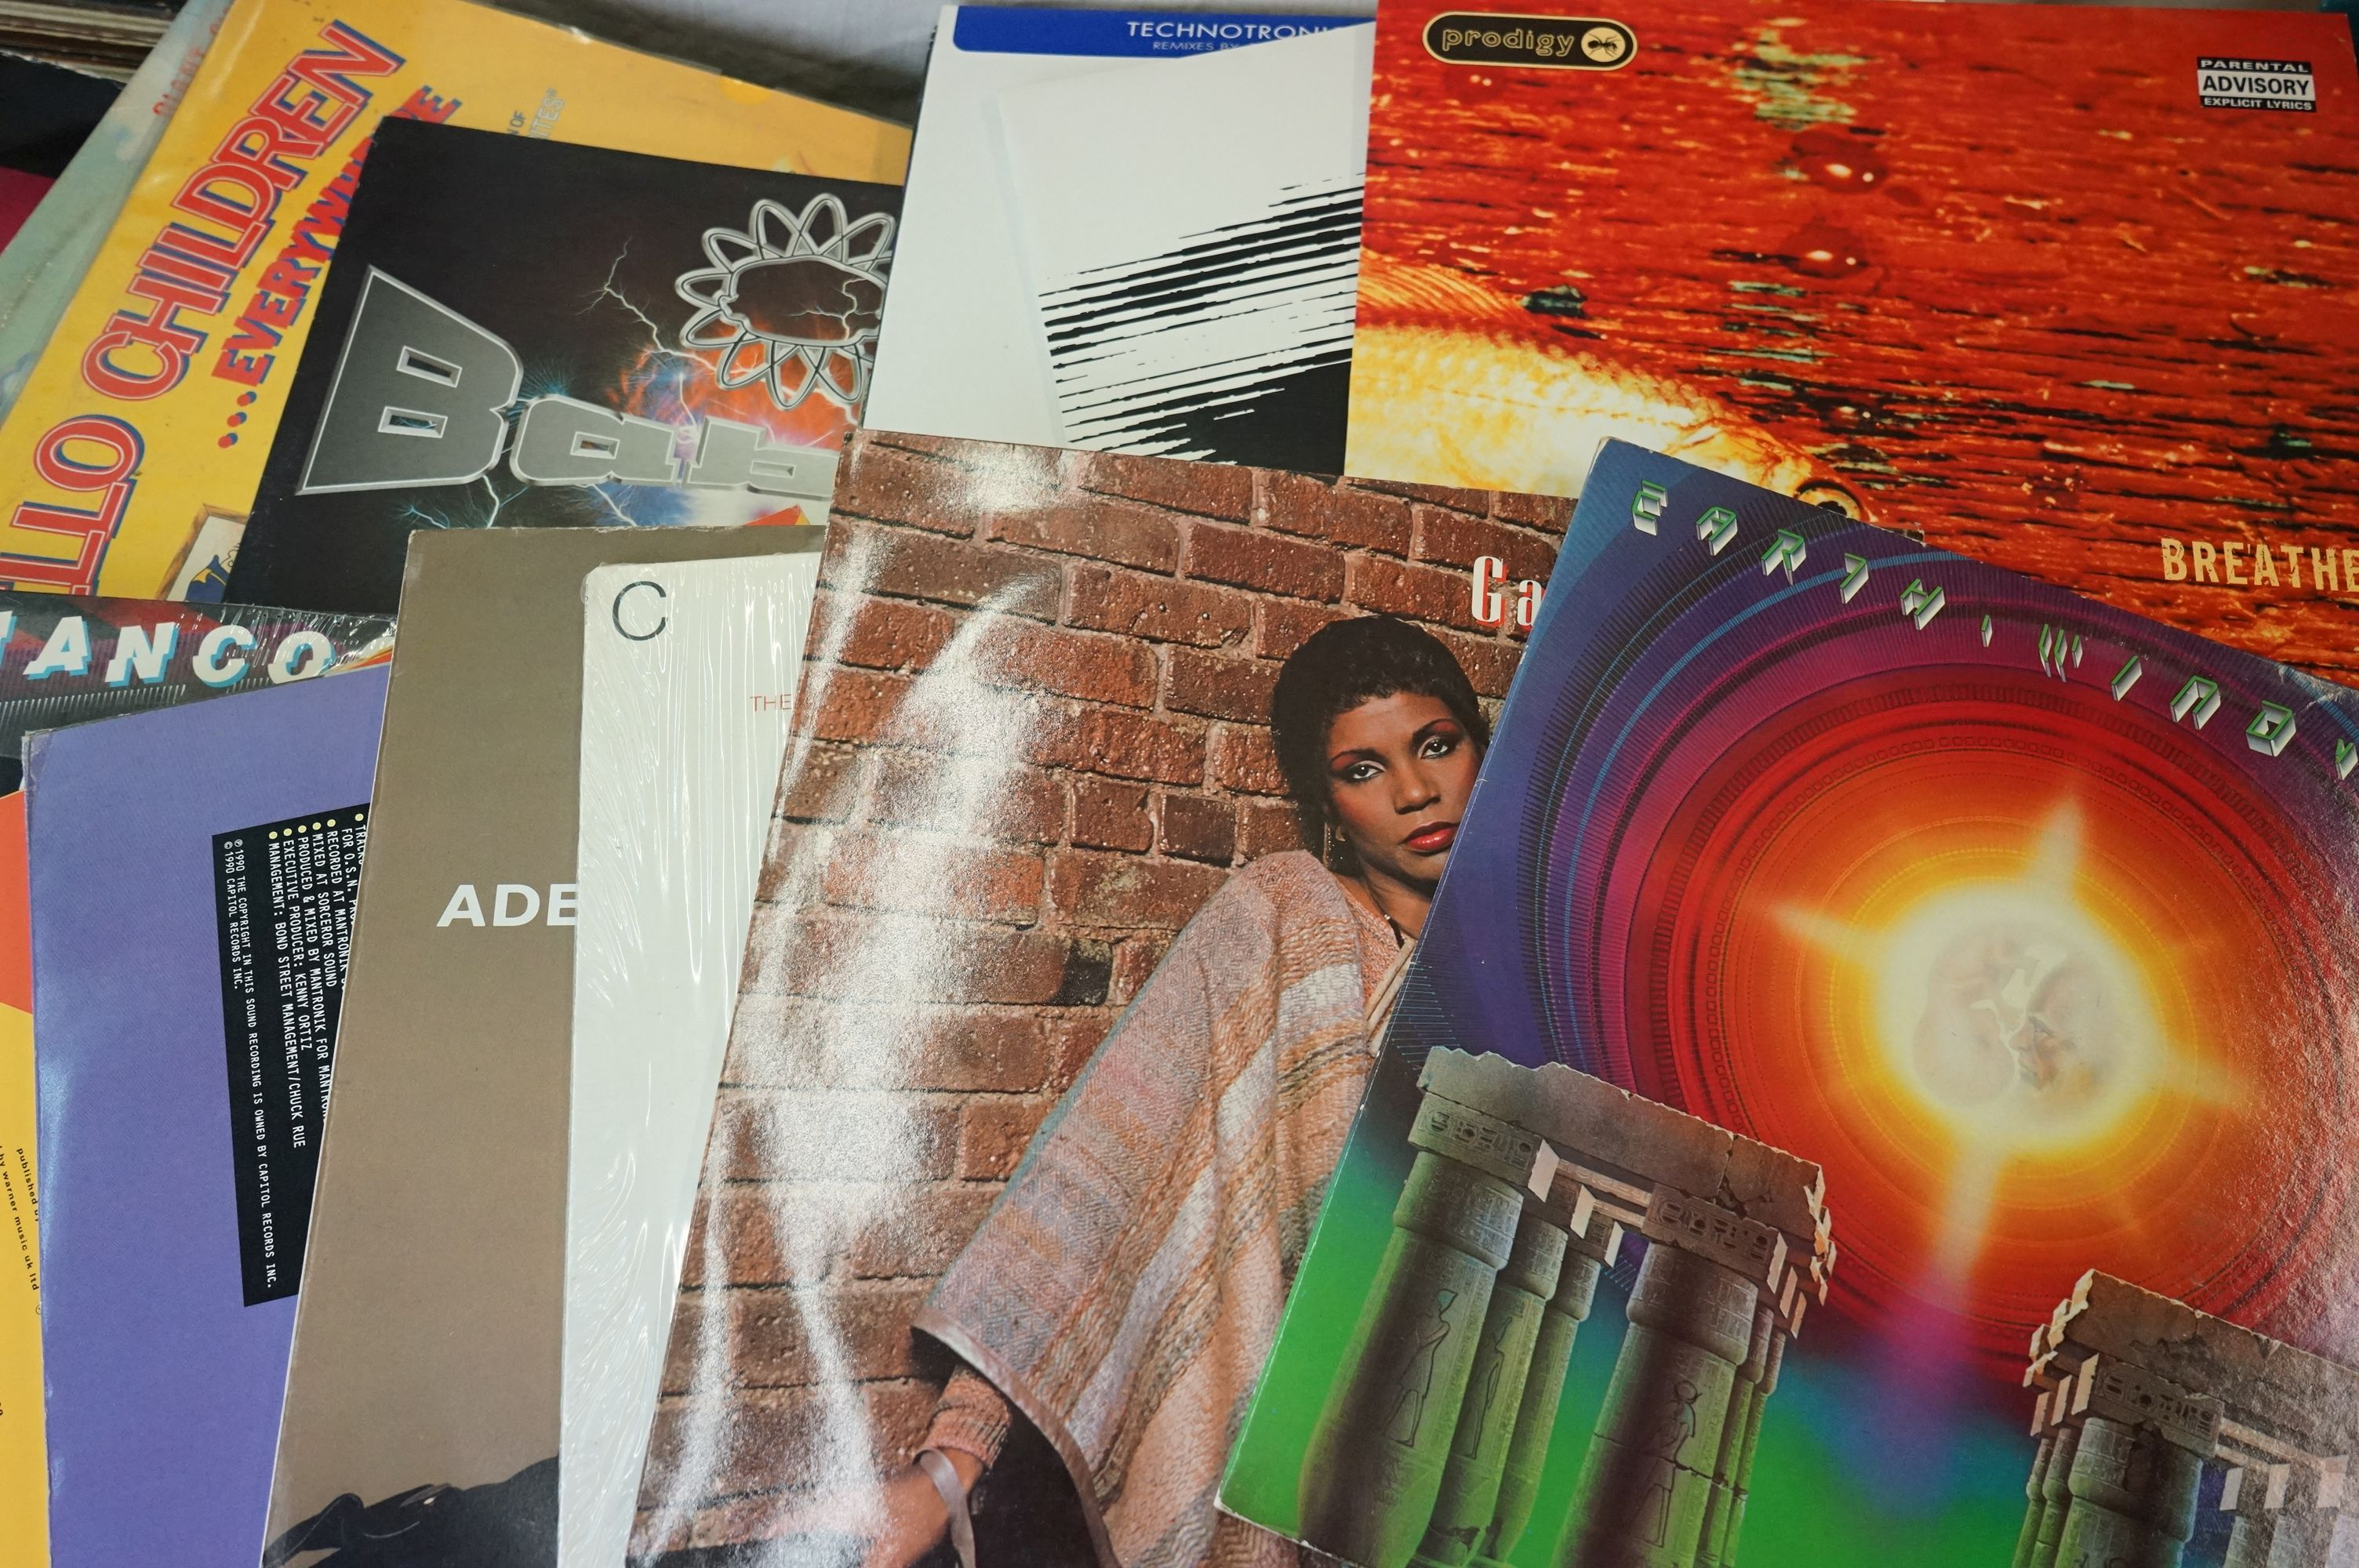 Vinyl - Large collection of LPs spanning the genres and decades (four boxes) - Image 4 of 8